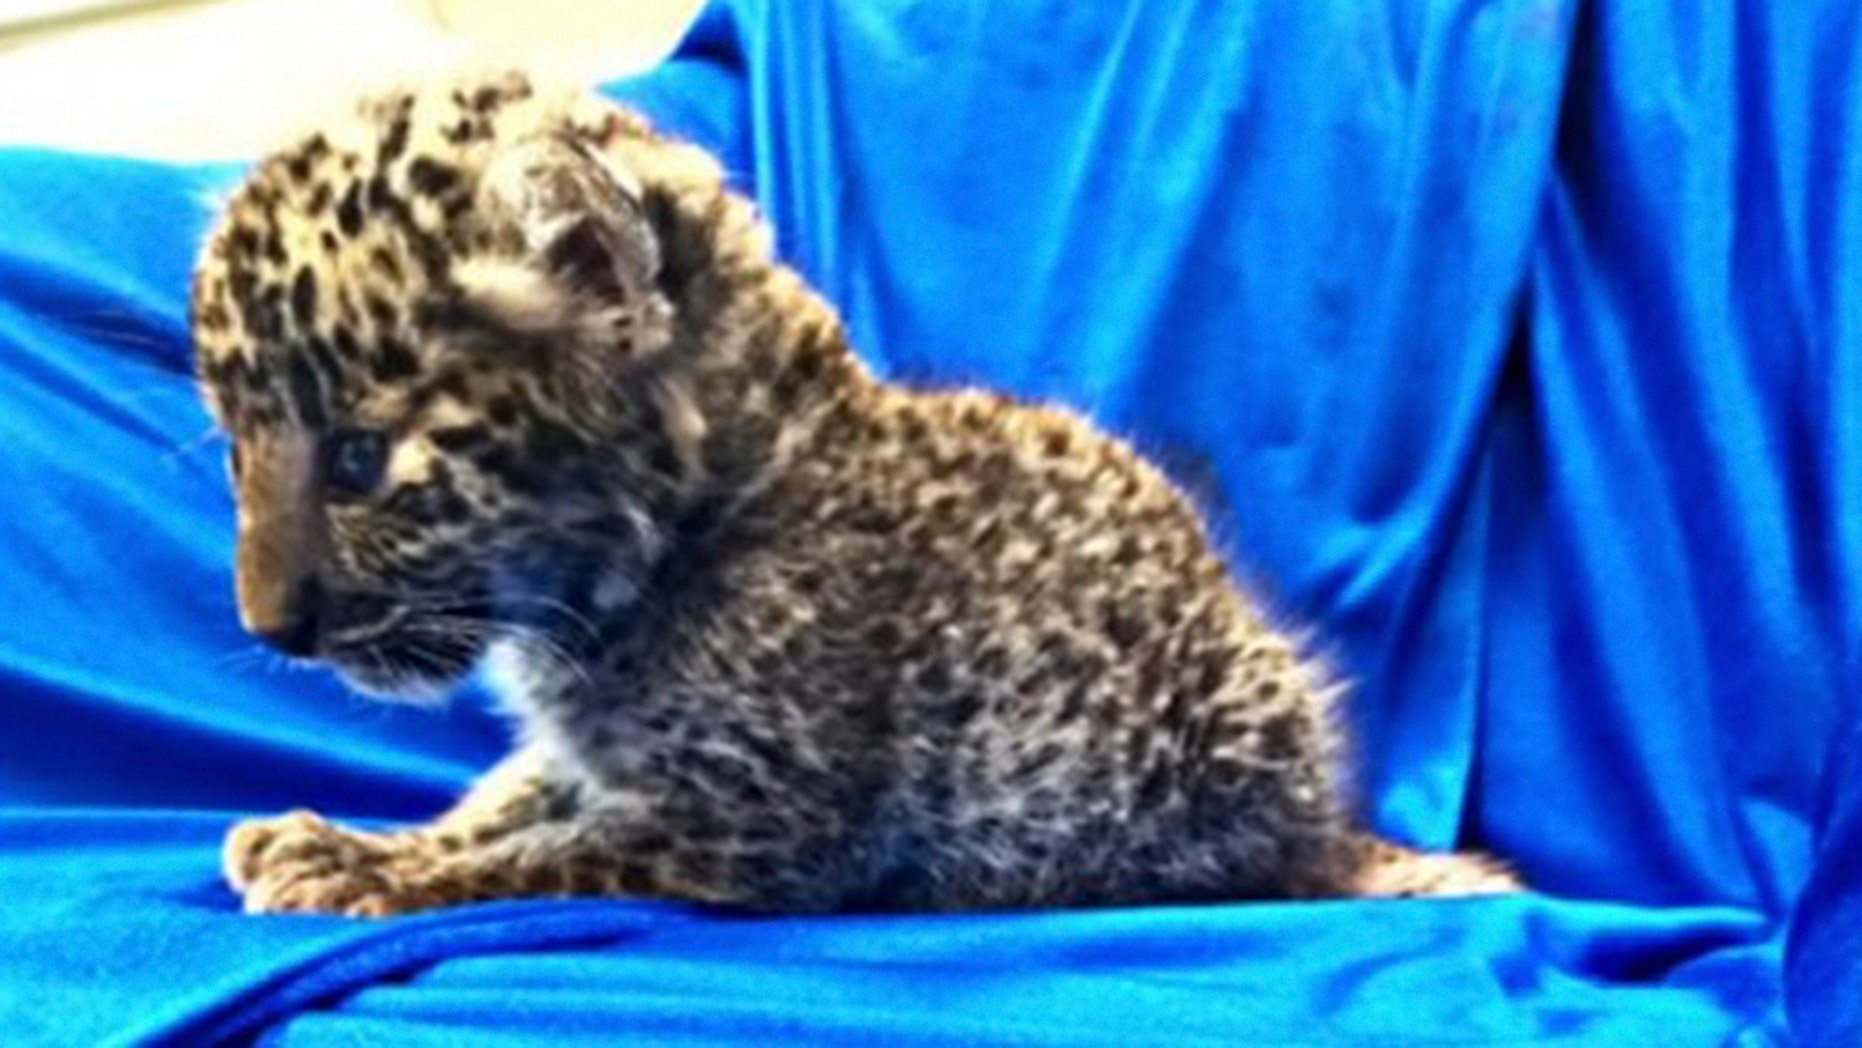 A month-old leopard was found in a passenger's luggage.